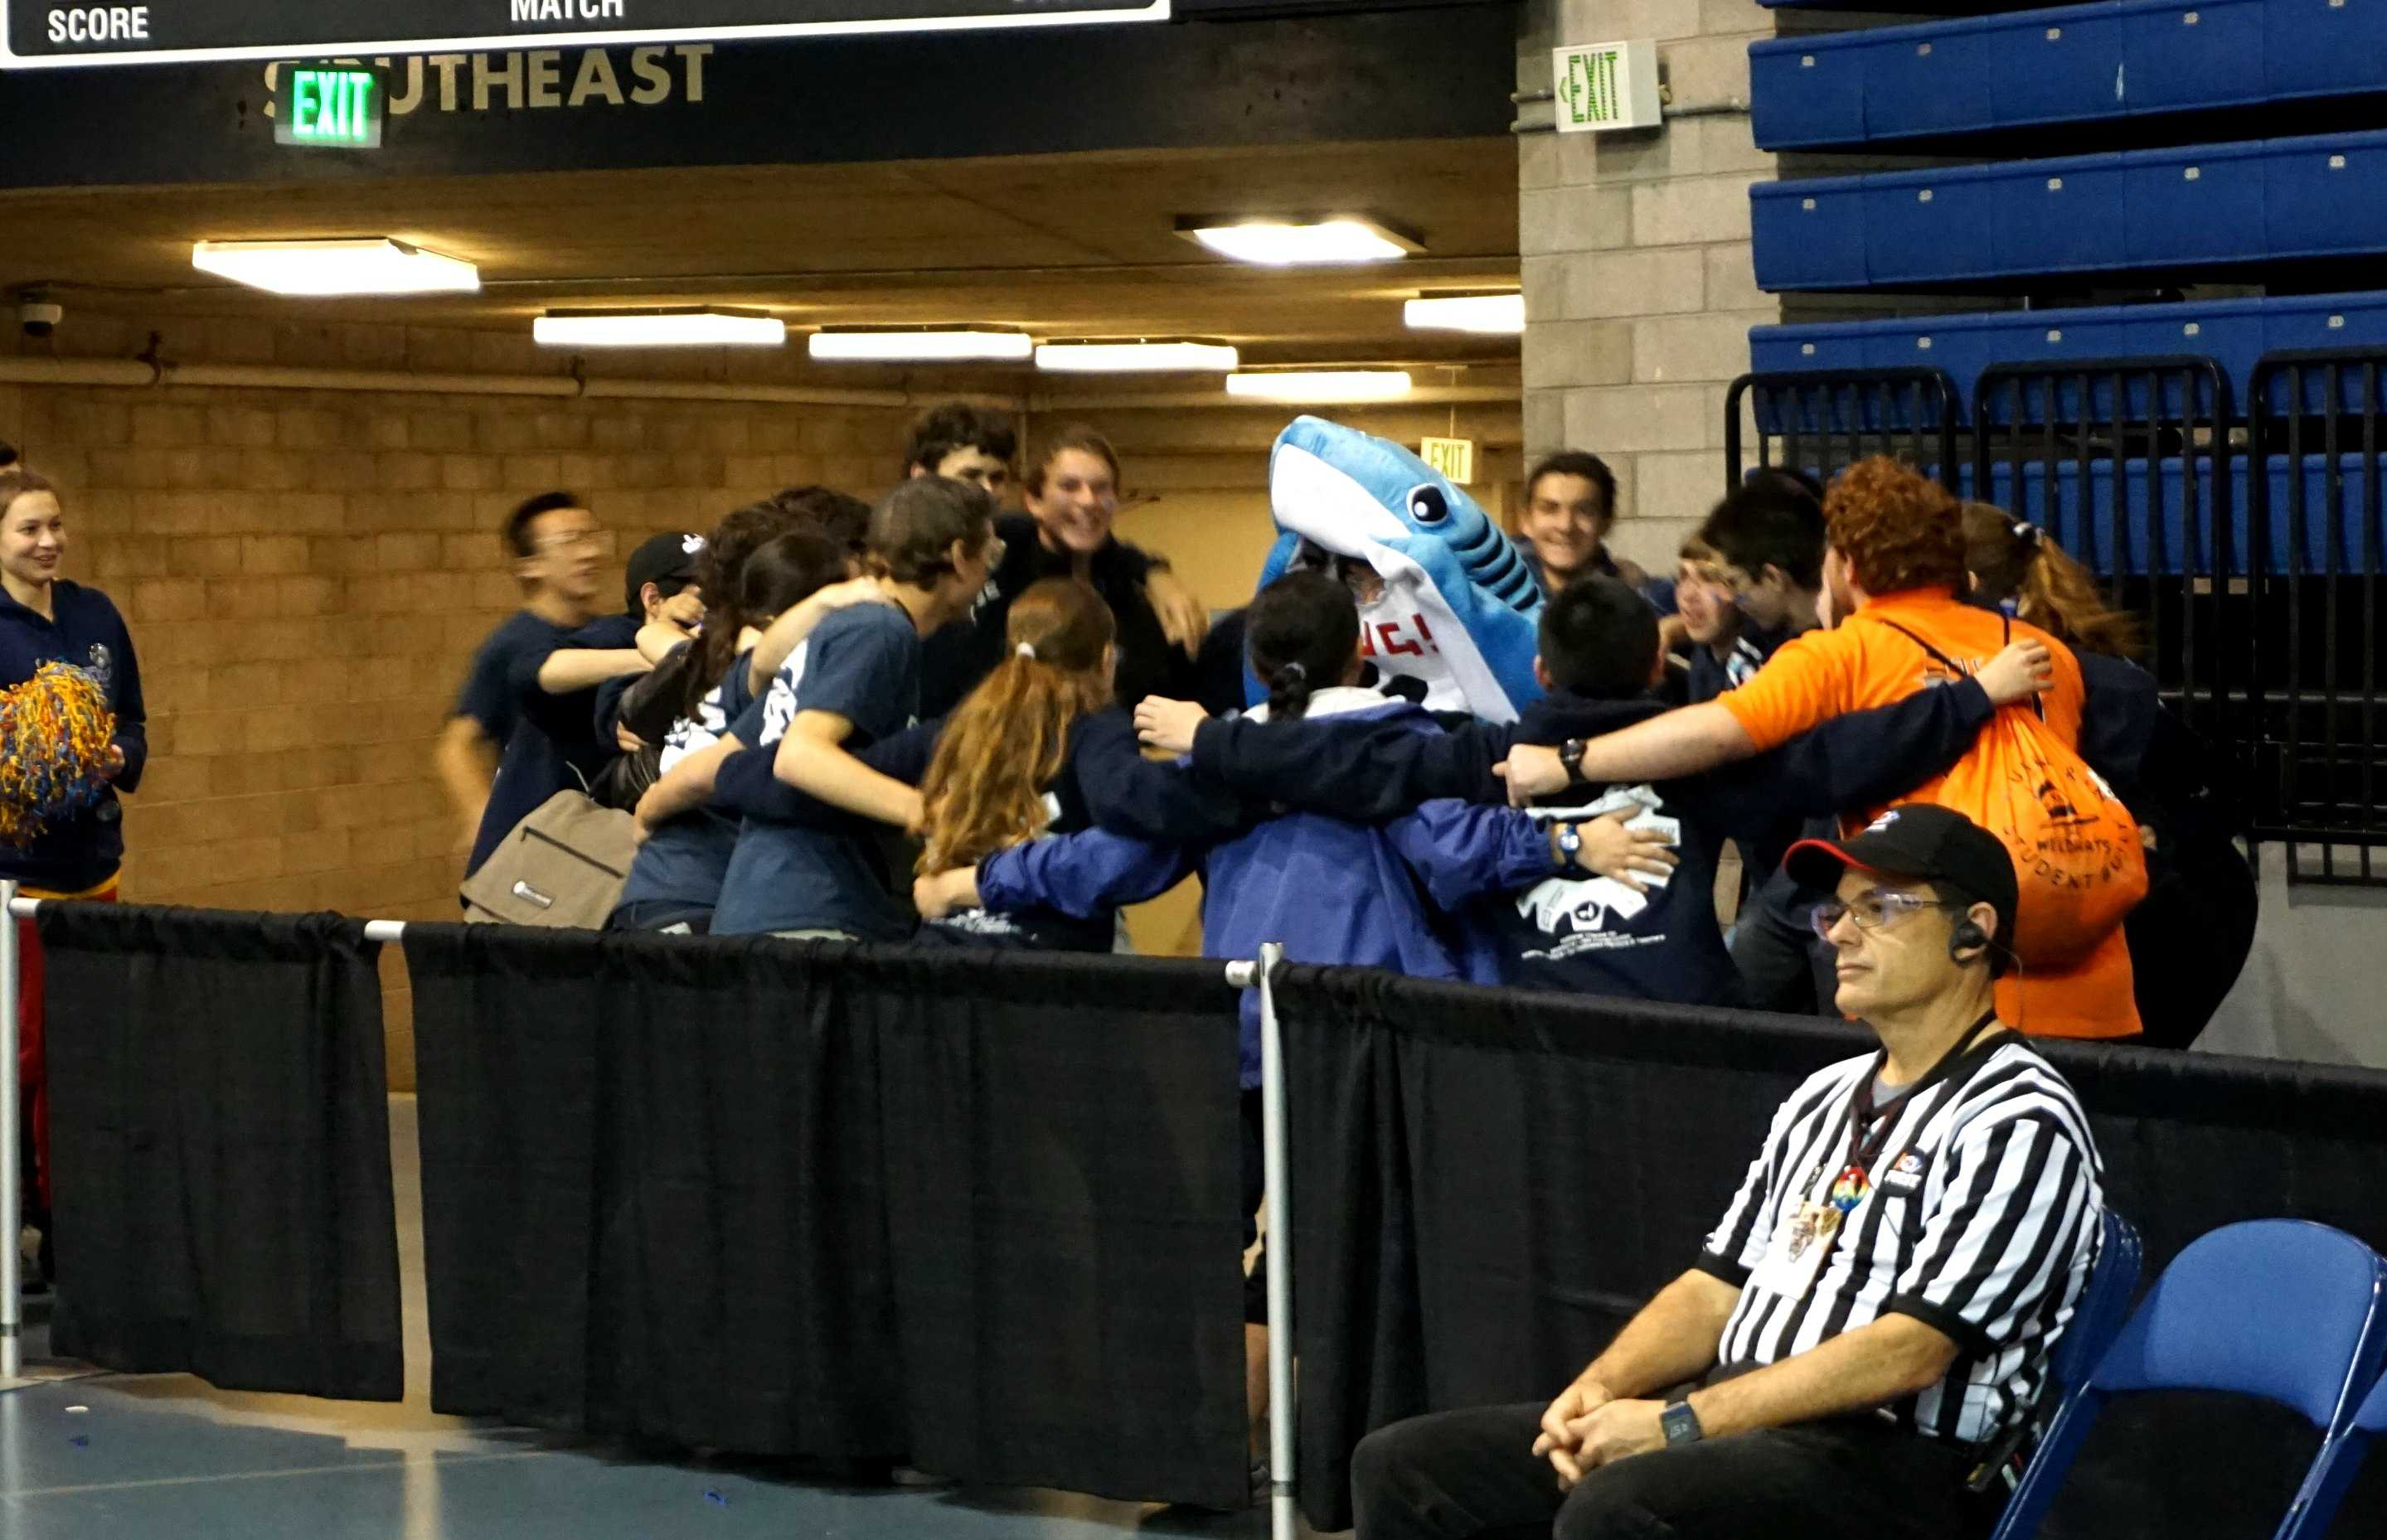 Deep Blue celebrates the results of their win at Sacramento Regionals with a group hug, including the team's mascot.